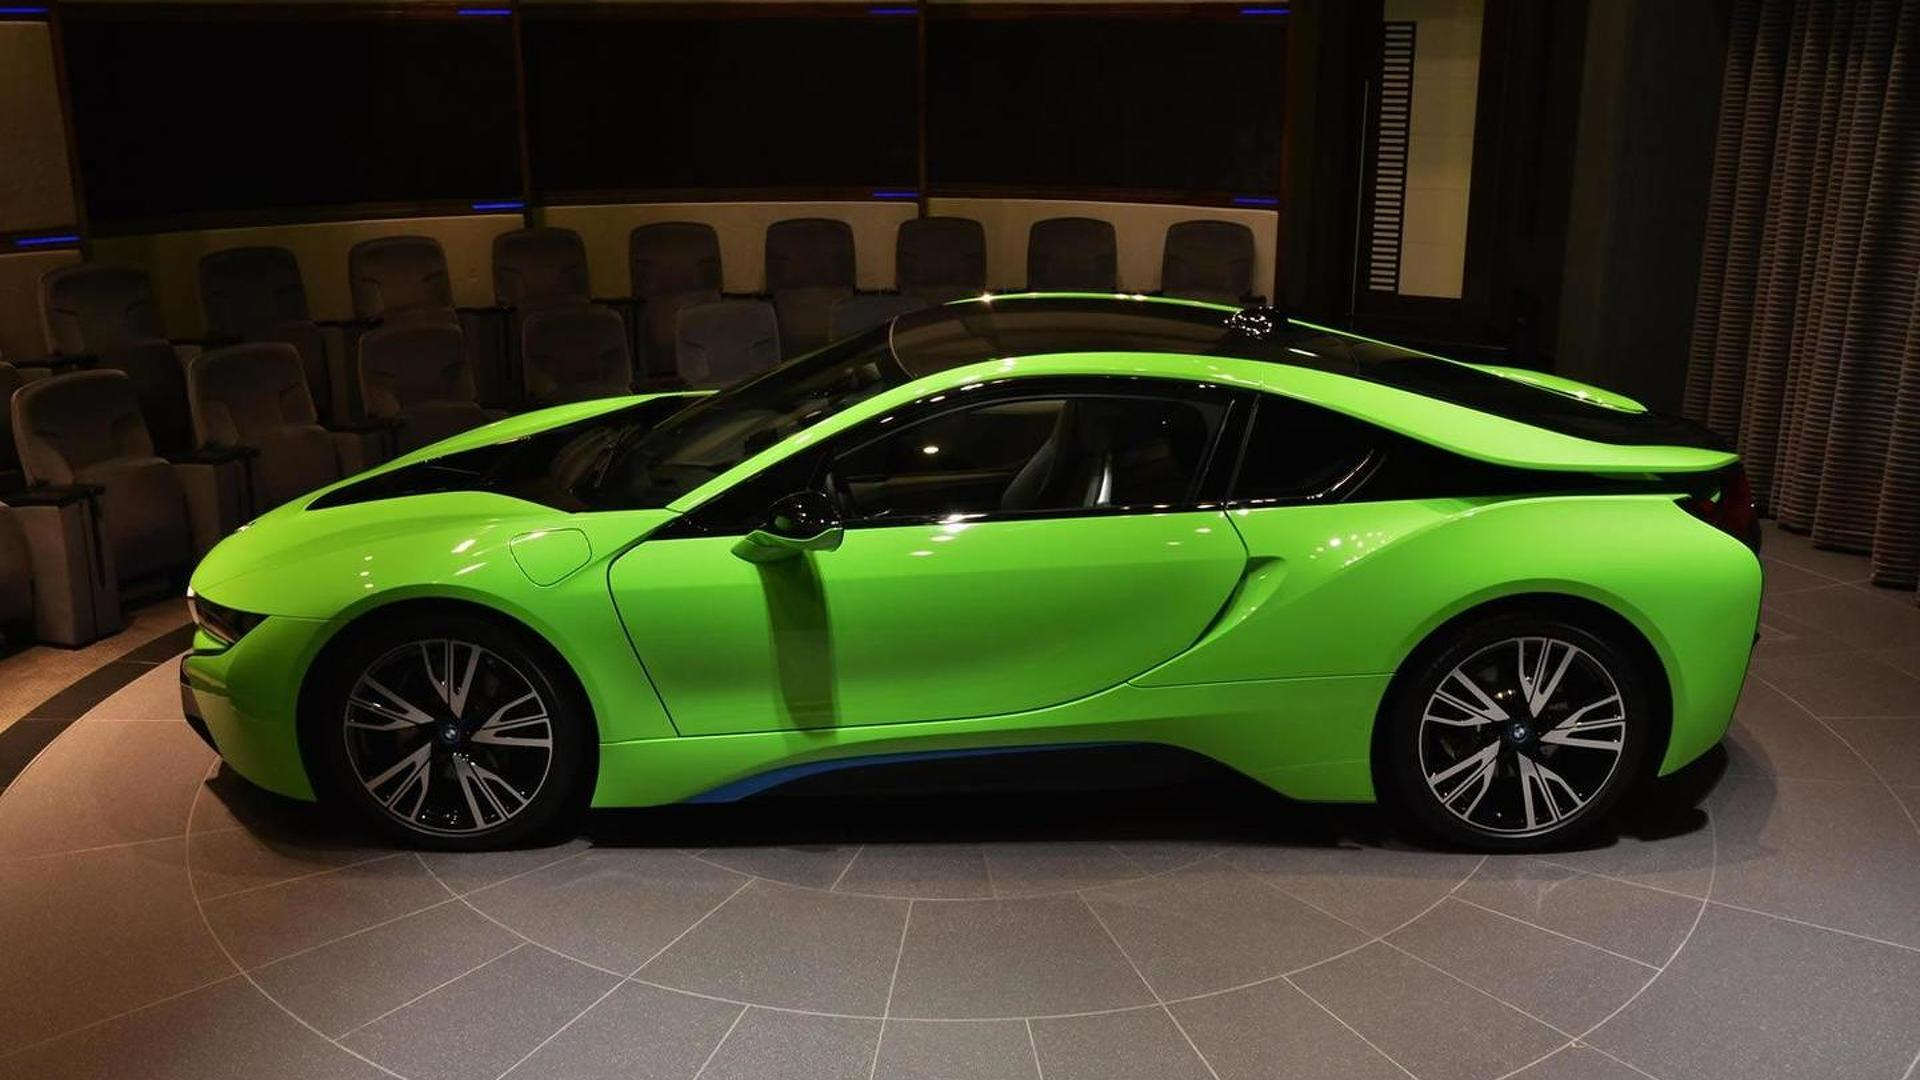 BMW doubles i8 production to keep up with strong demand